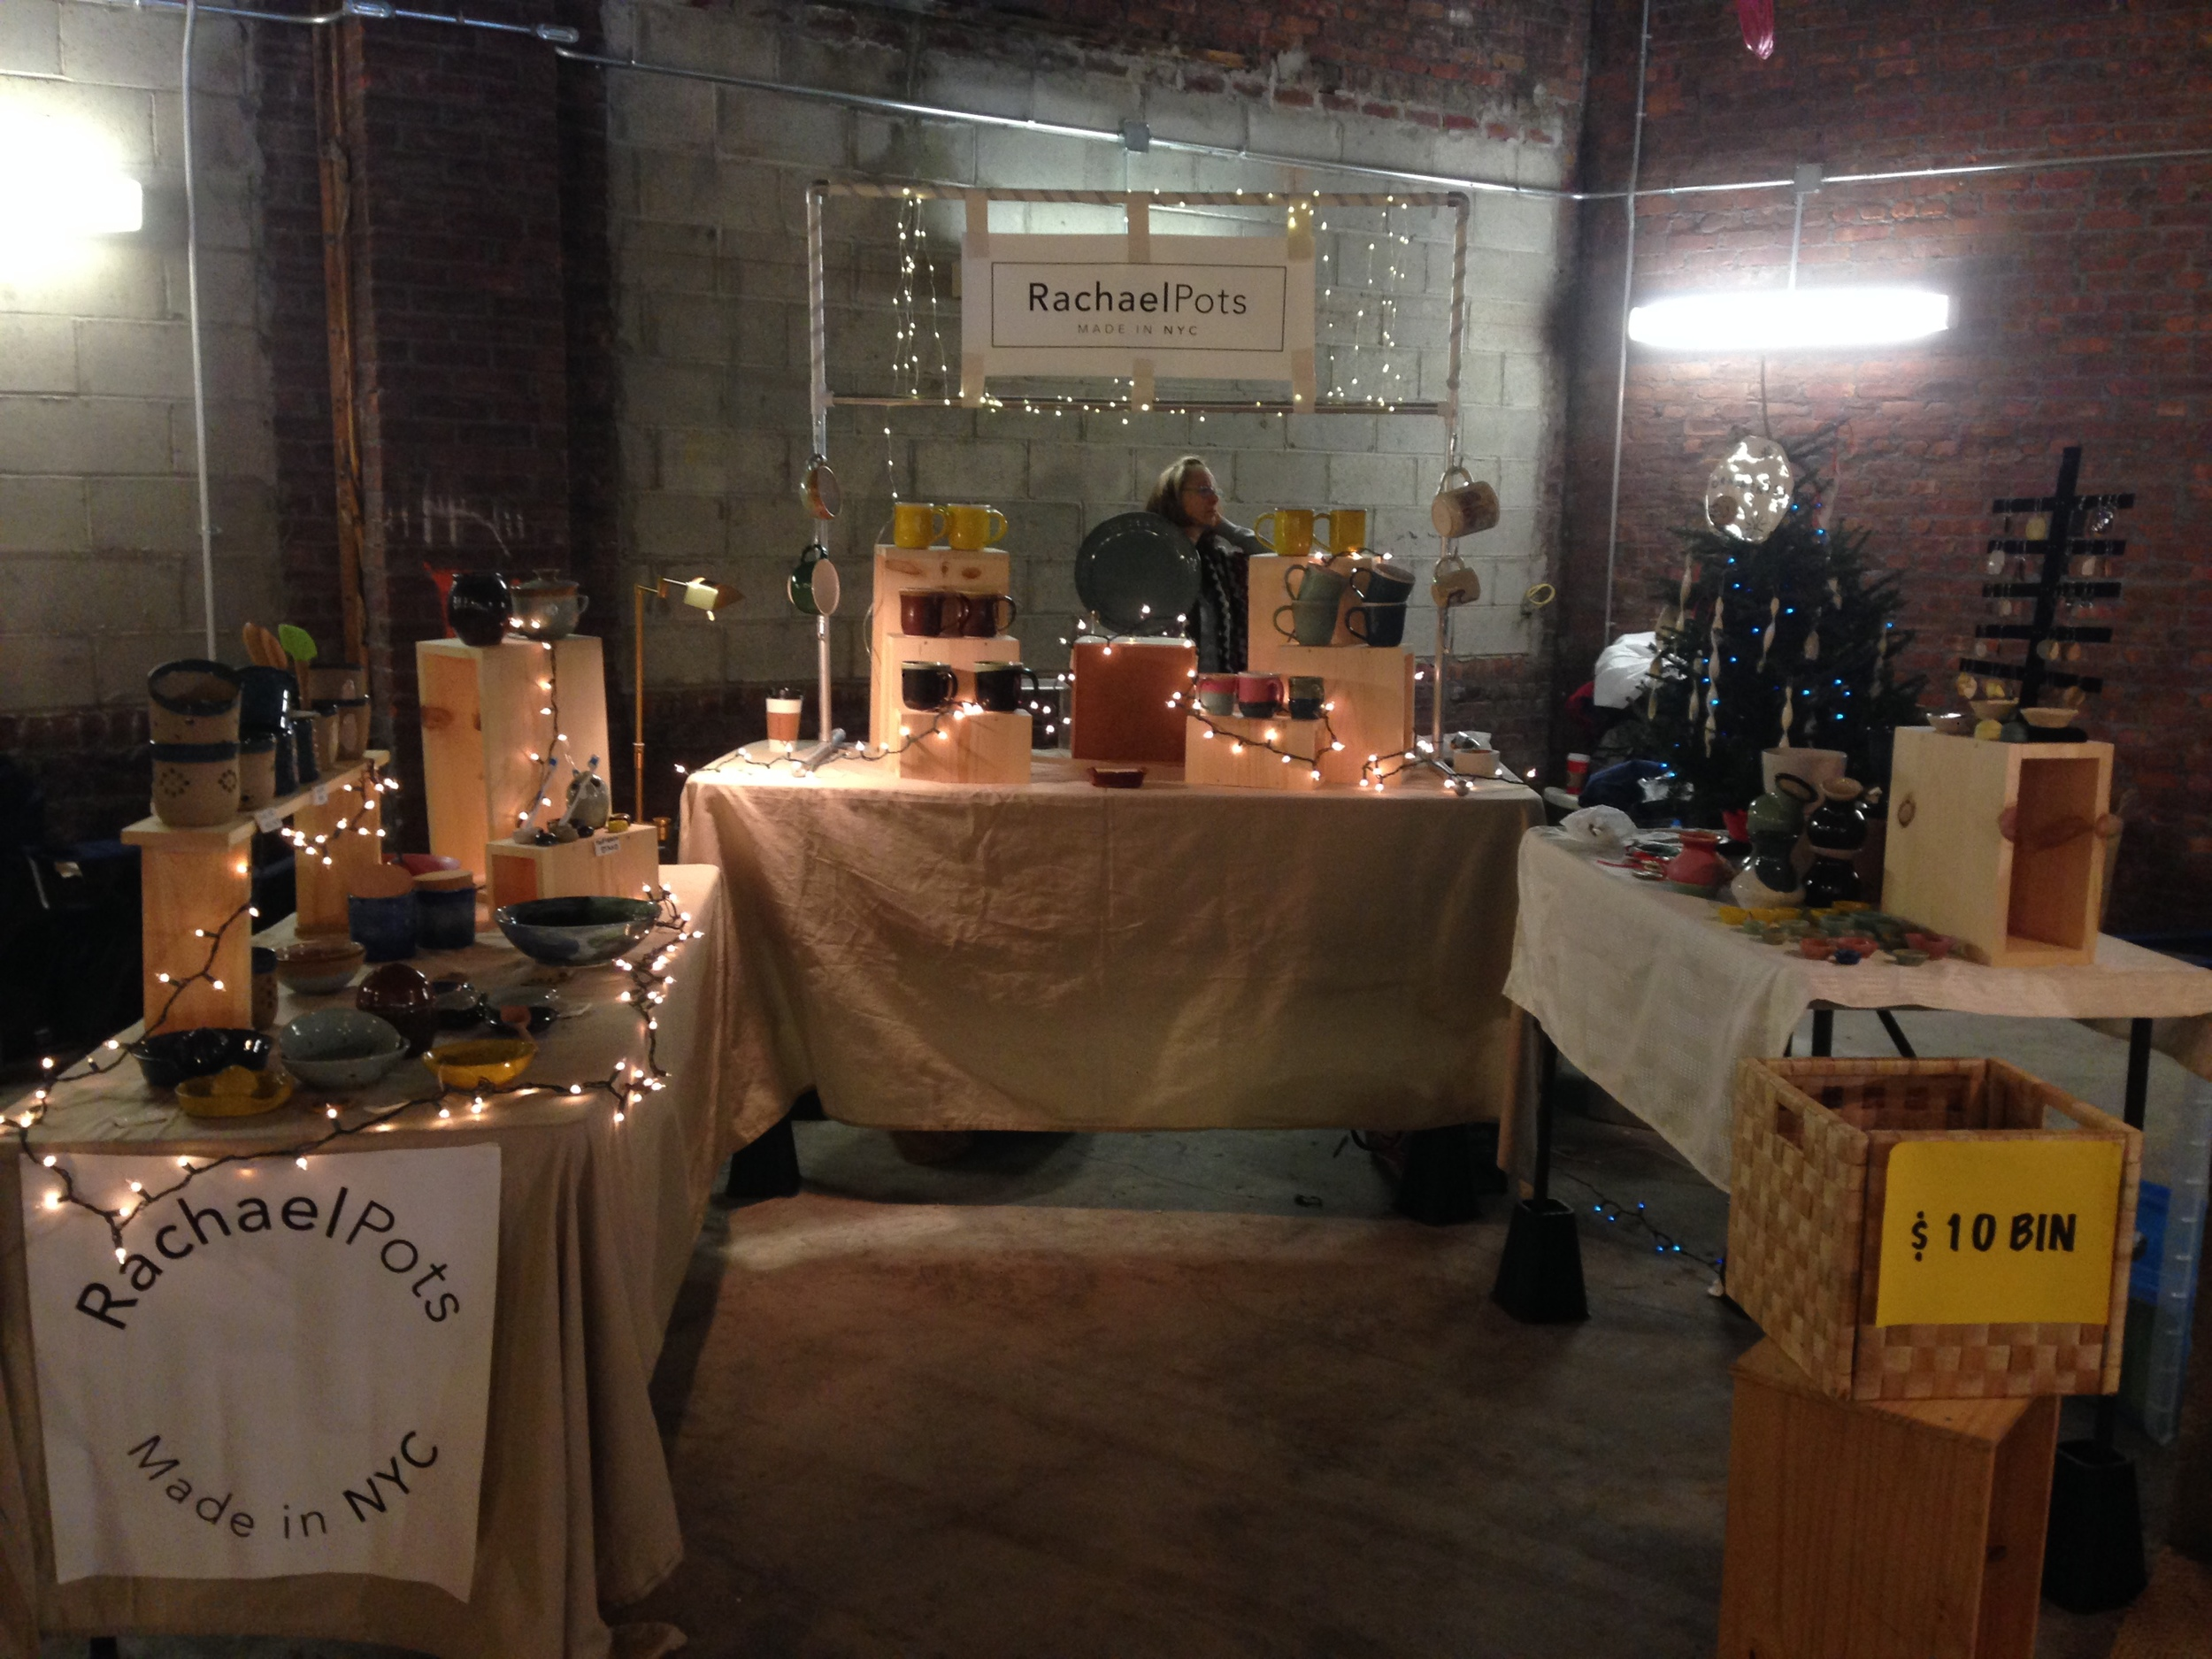 Here is a shot from our set up at the Shops at Atlas Park in Queens this year! A bit of a dark space, we made the best of it with twinkling lights!